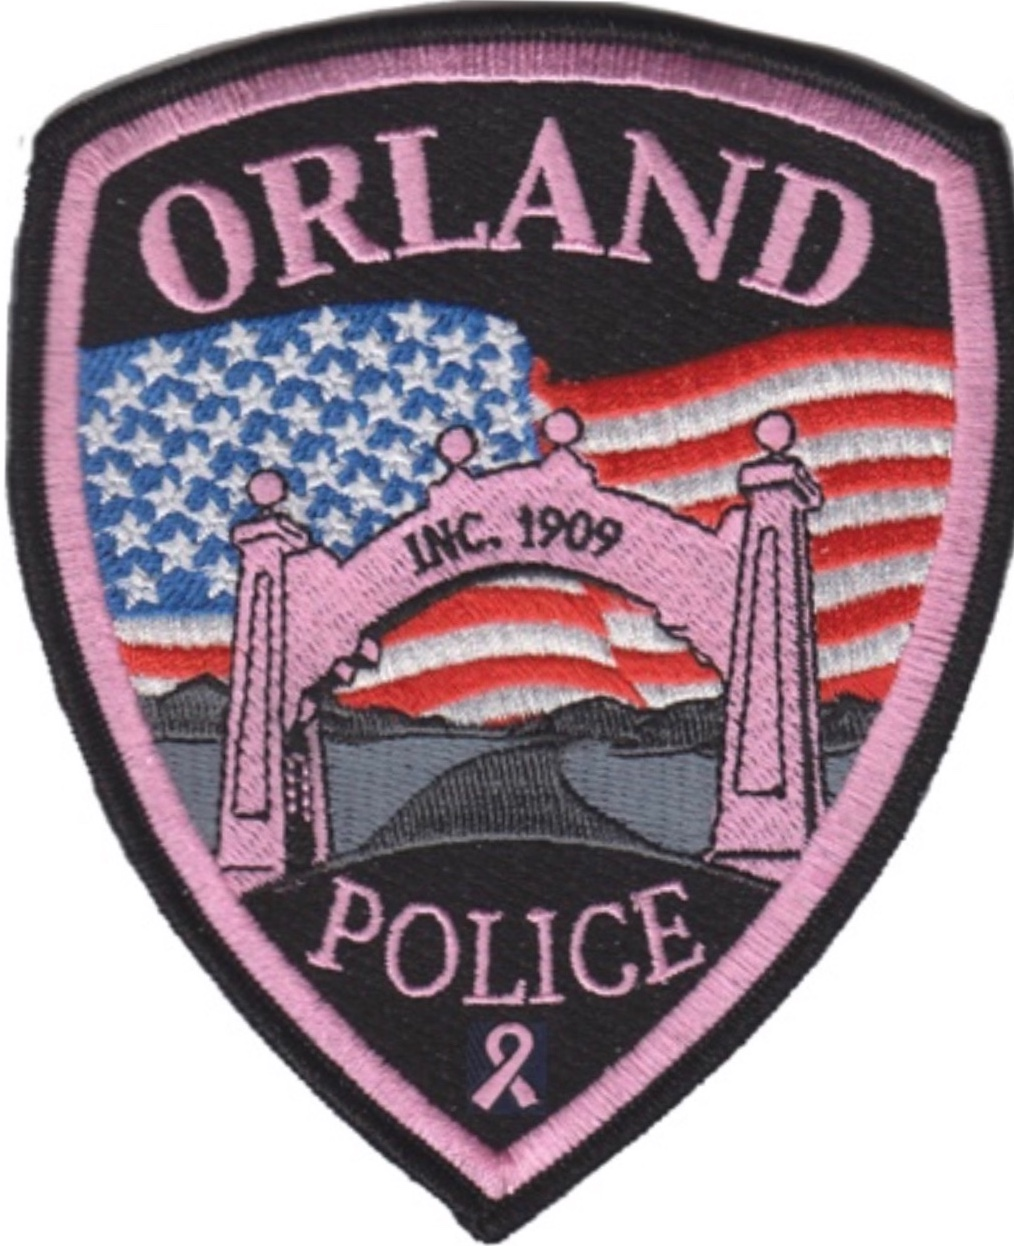 Orland PD Pink Patch.jpg